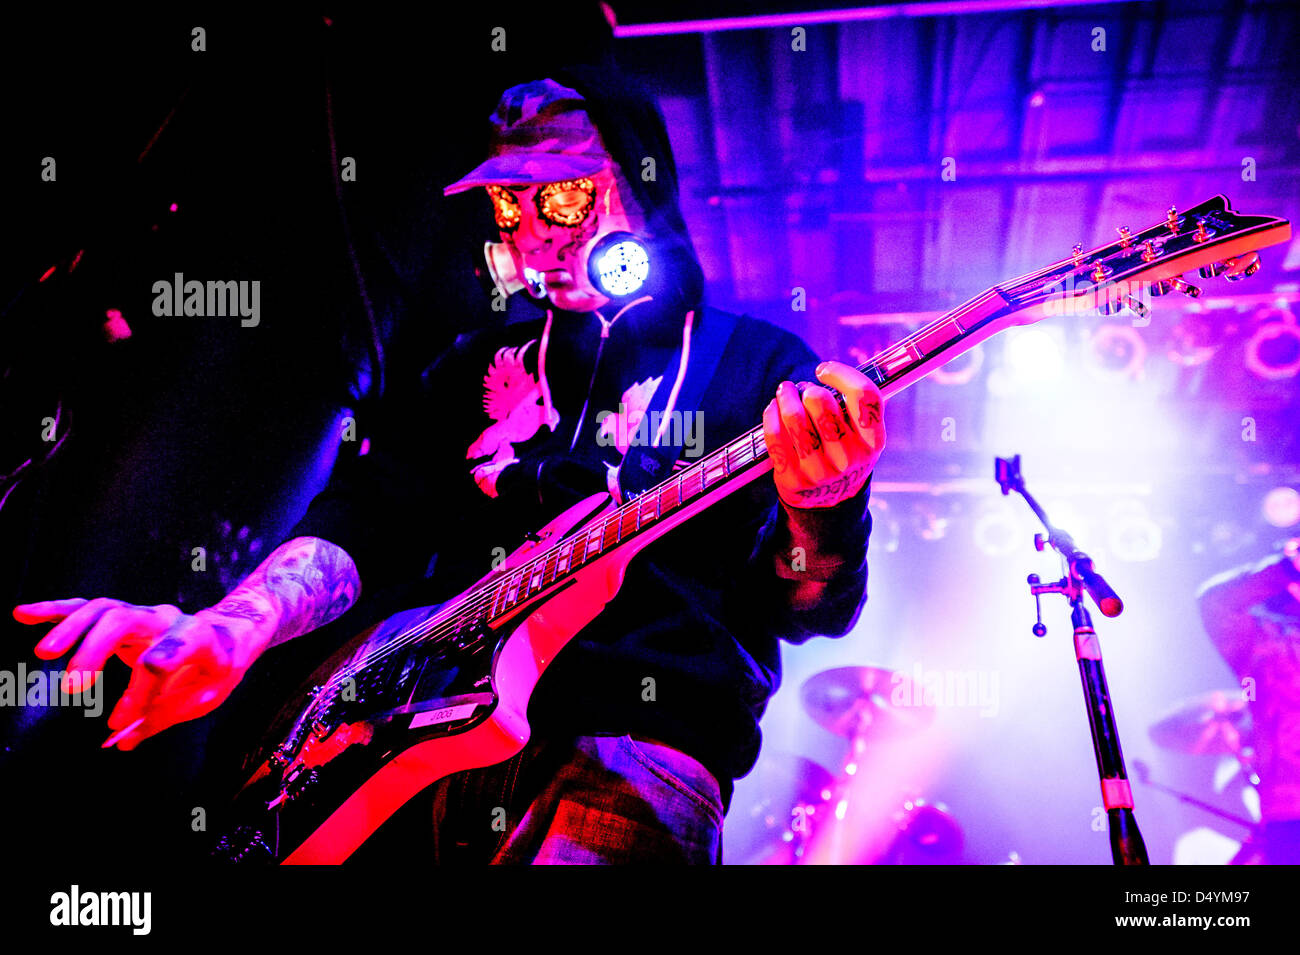 Toronto, Ontario, Canada. March 20, 2013. American rap rock band HOLLYWOOD UNDEAD performed a show at Phoenix Theatre Stock Photo